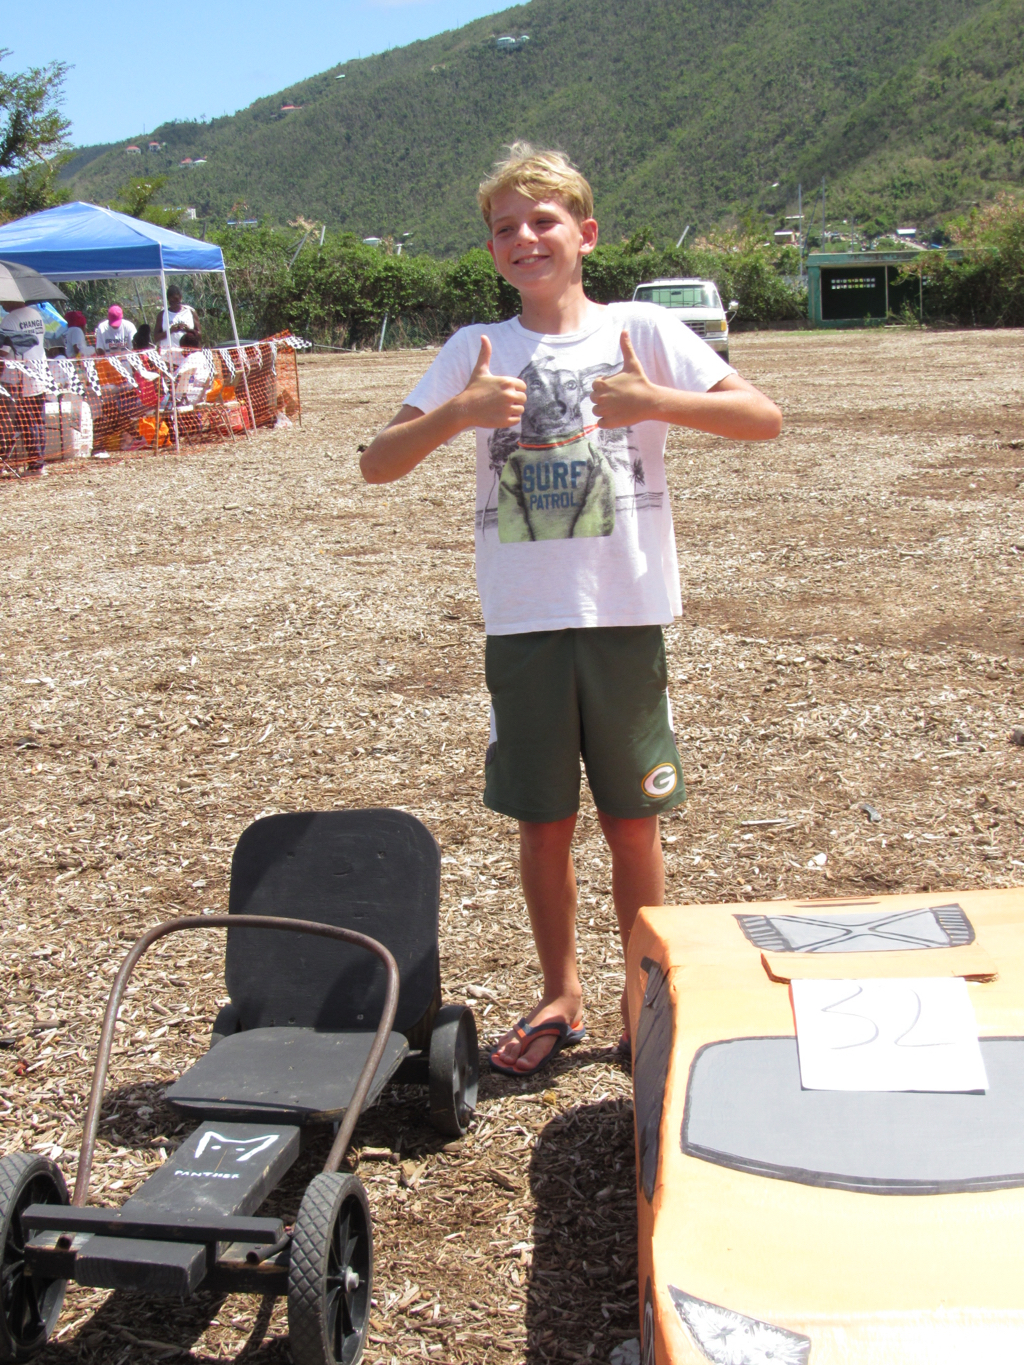 Henry Radcliffe, 11, shows off the go cart and cardboard 'Lamborghini' he built.